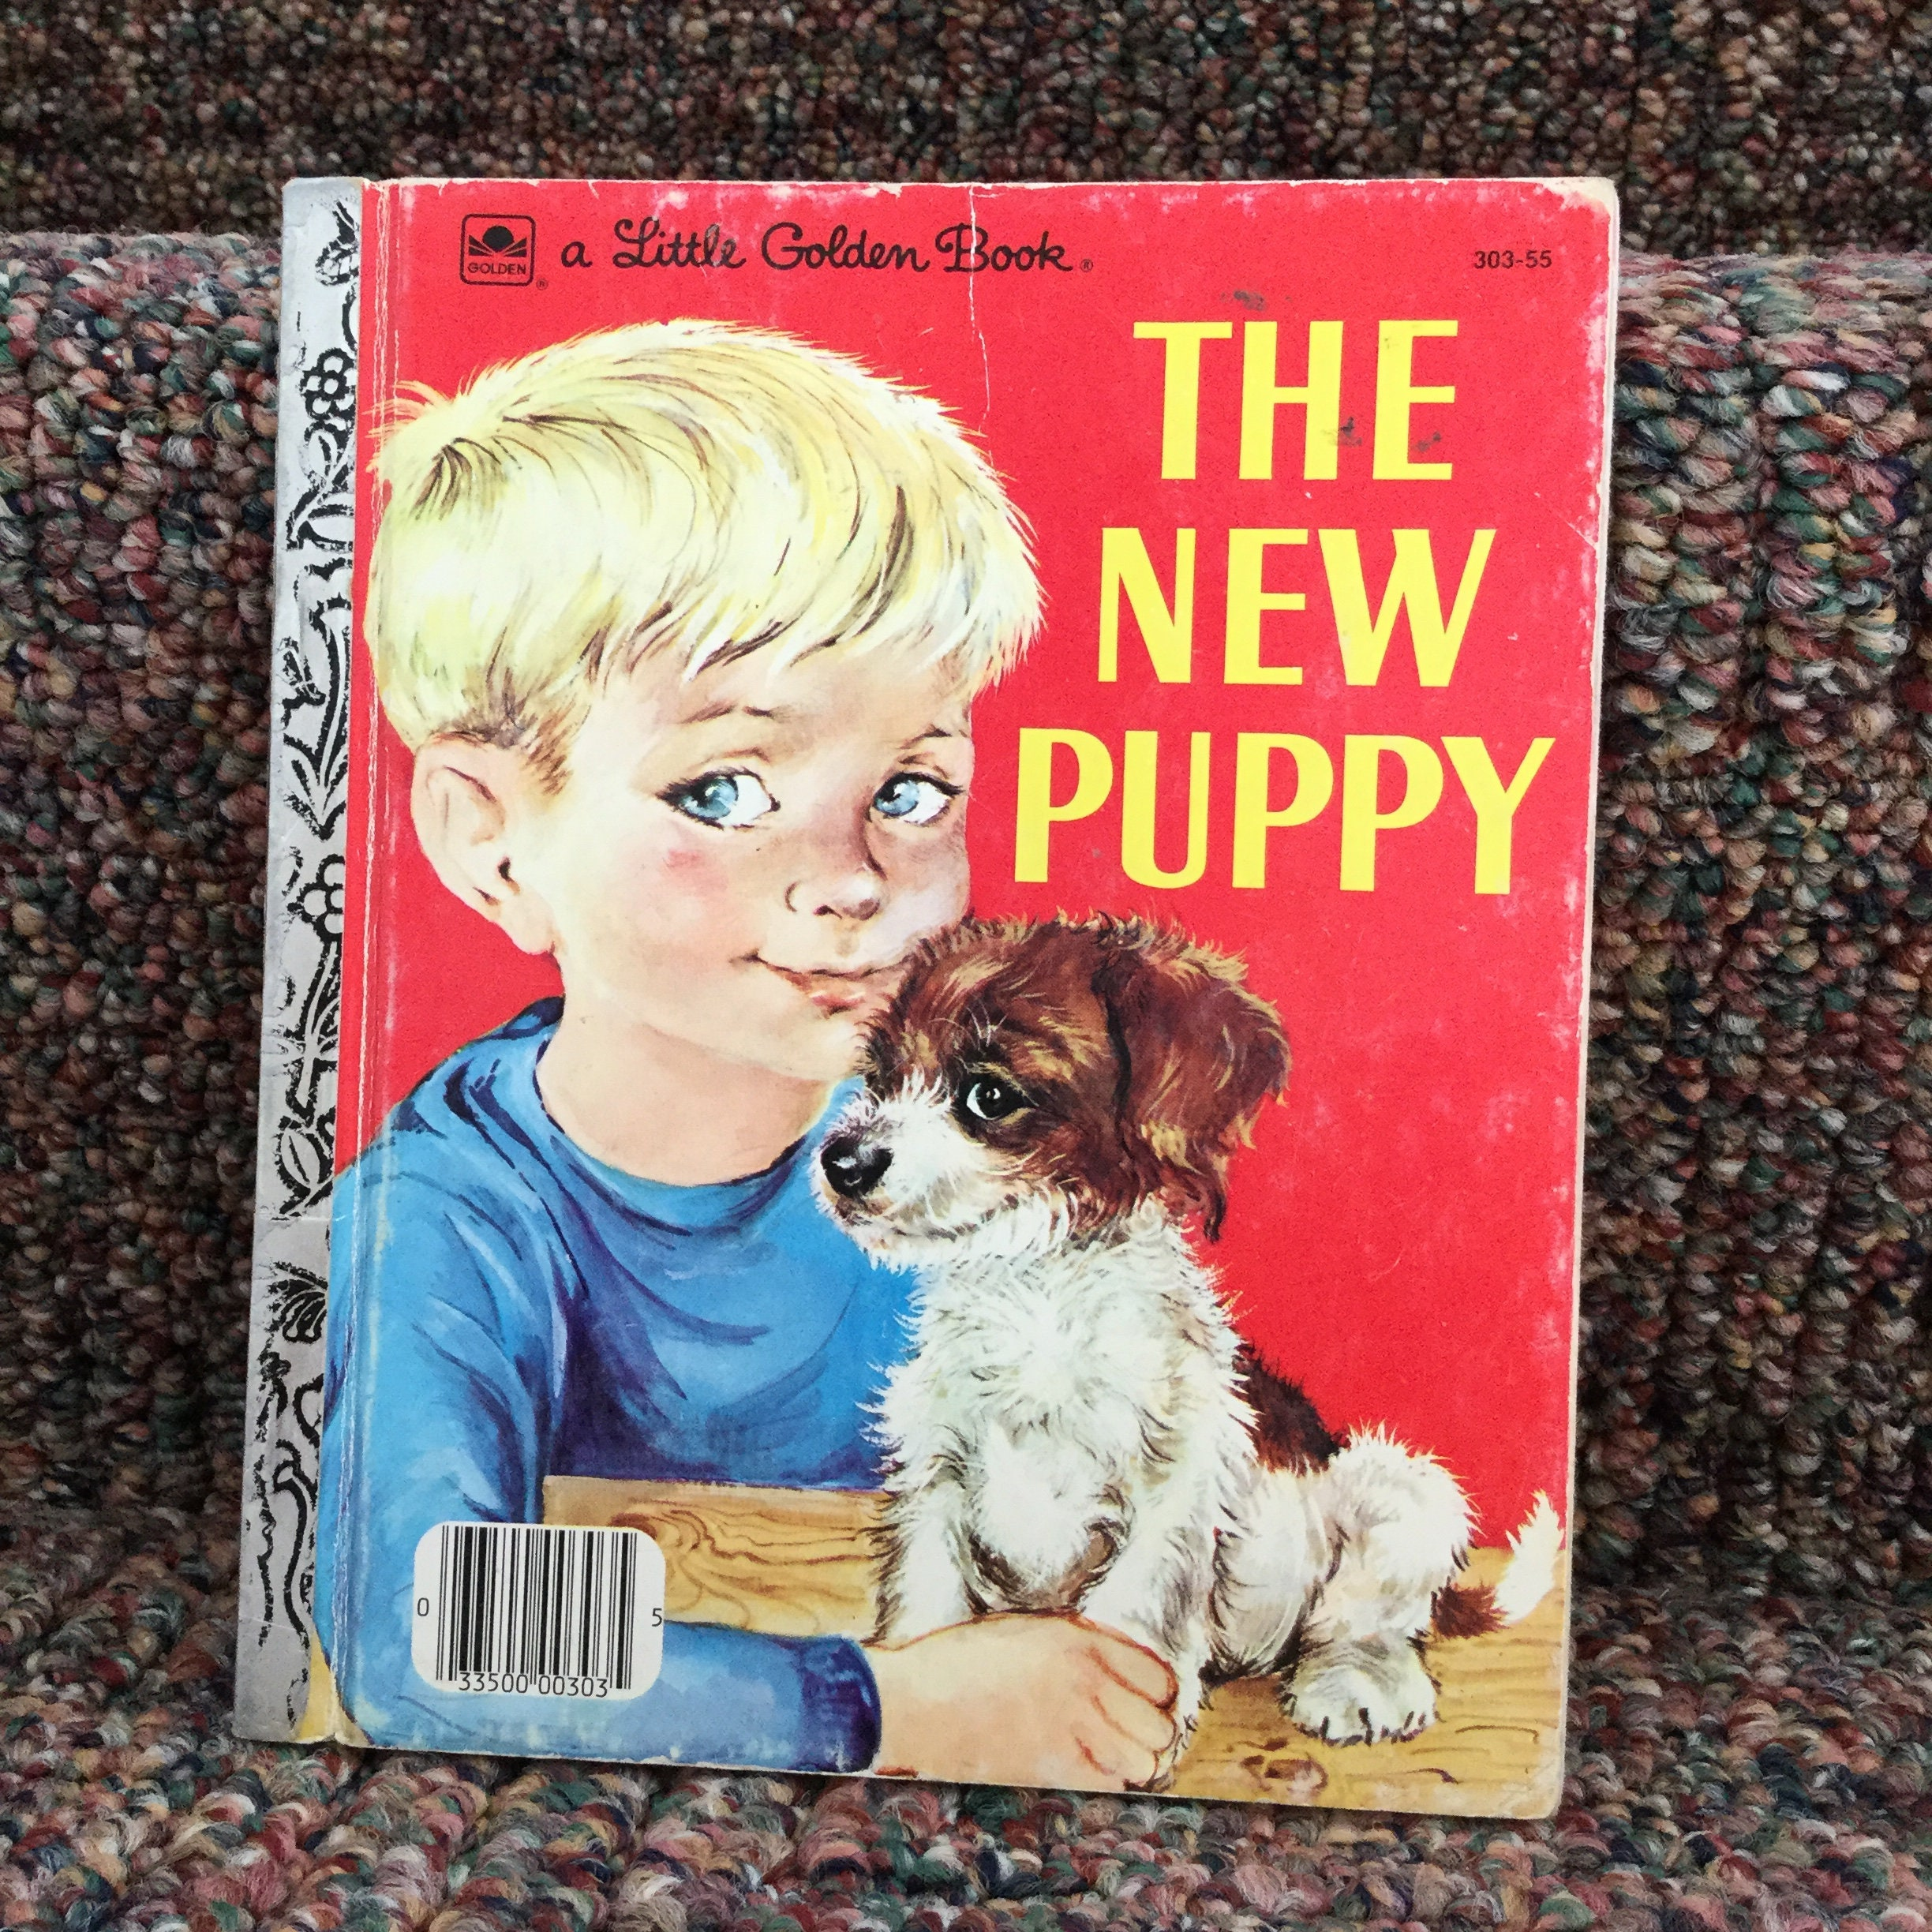 The New Puppy Book - Little Golden Books New Puppy - 1969 - Racine, WI -  Learn to Care for a New Puppy - Puppy Book - Dog Book for Kids